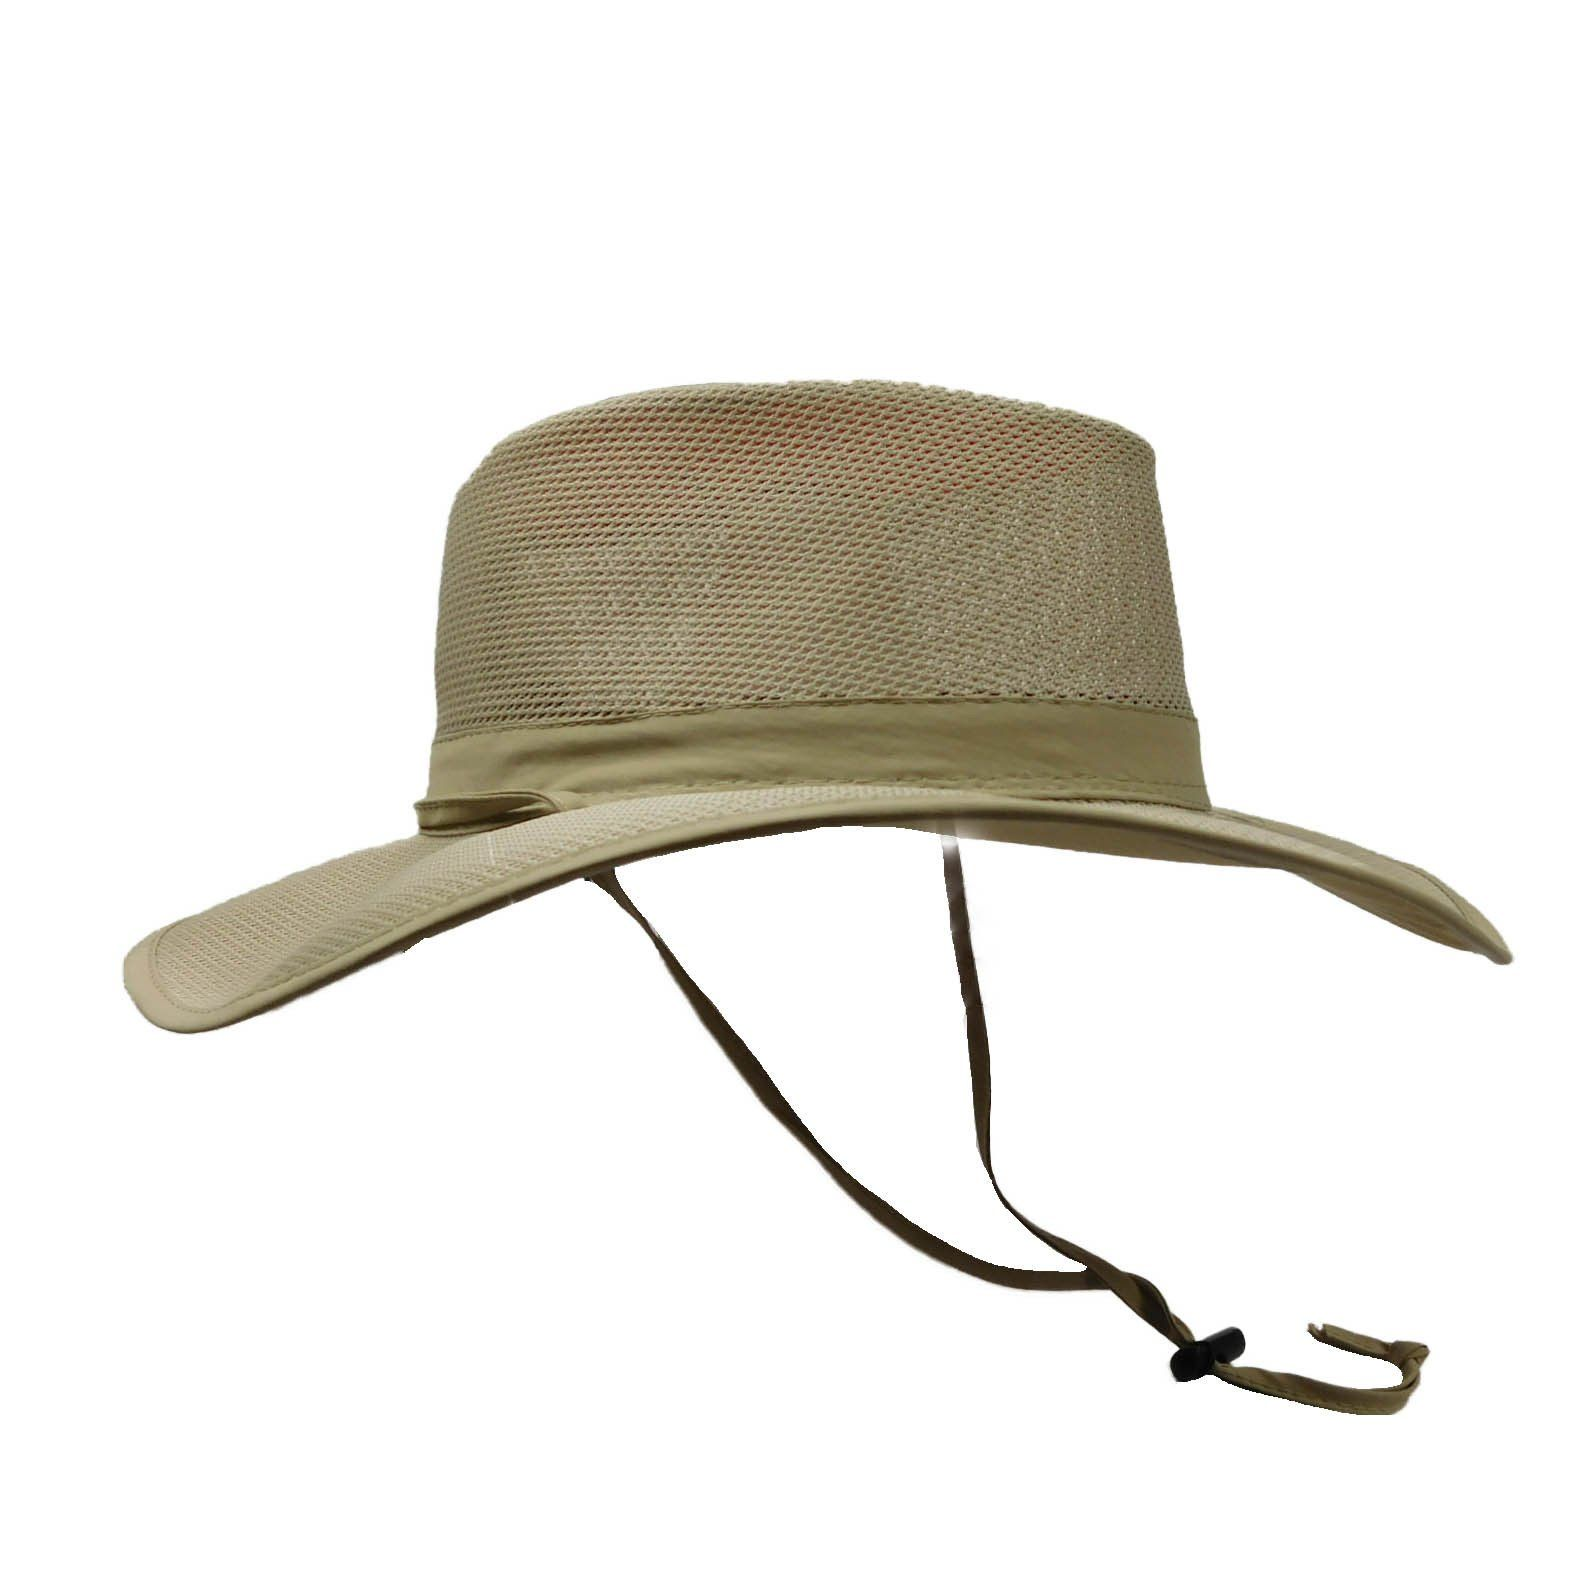 SPF 50 Vented Outback Safari Sun Hat w//Chin Strap Mesh Crown Breezer Cap